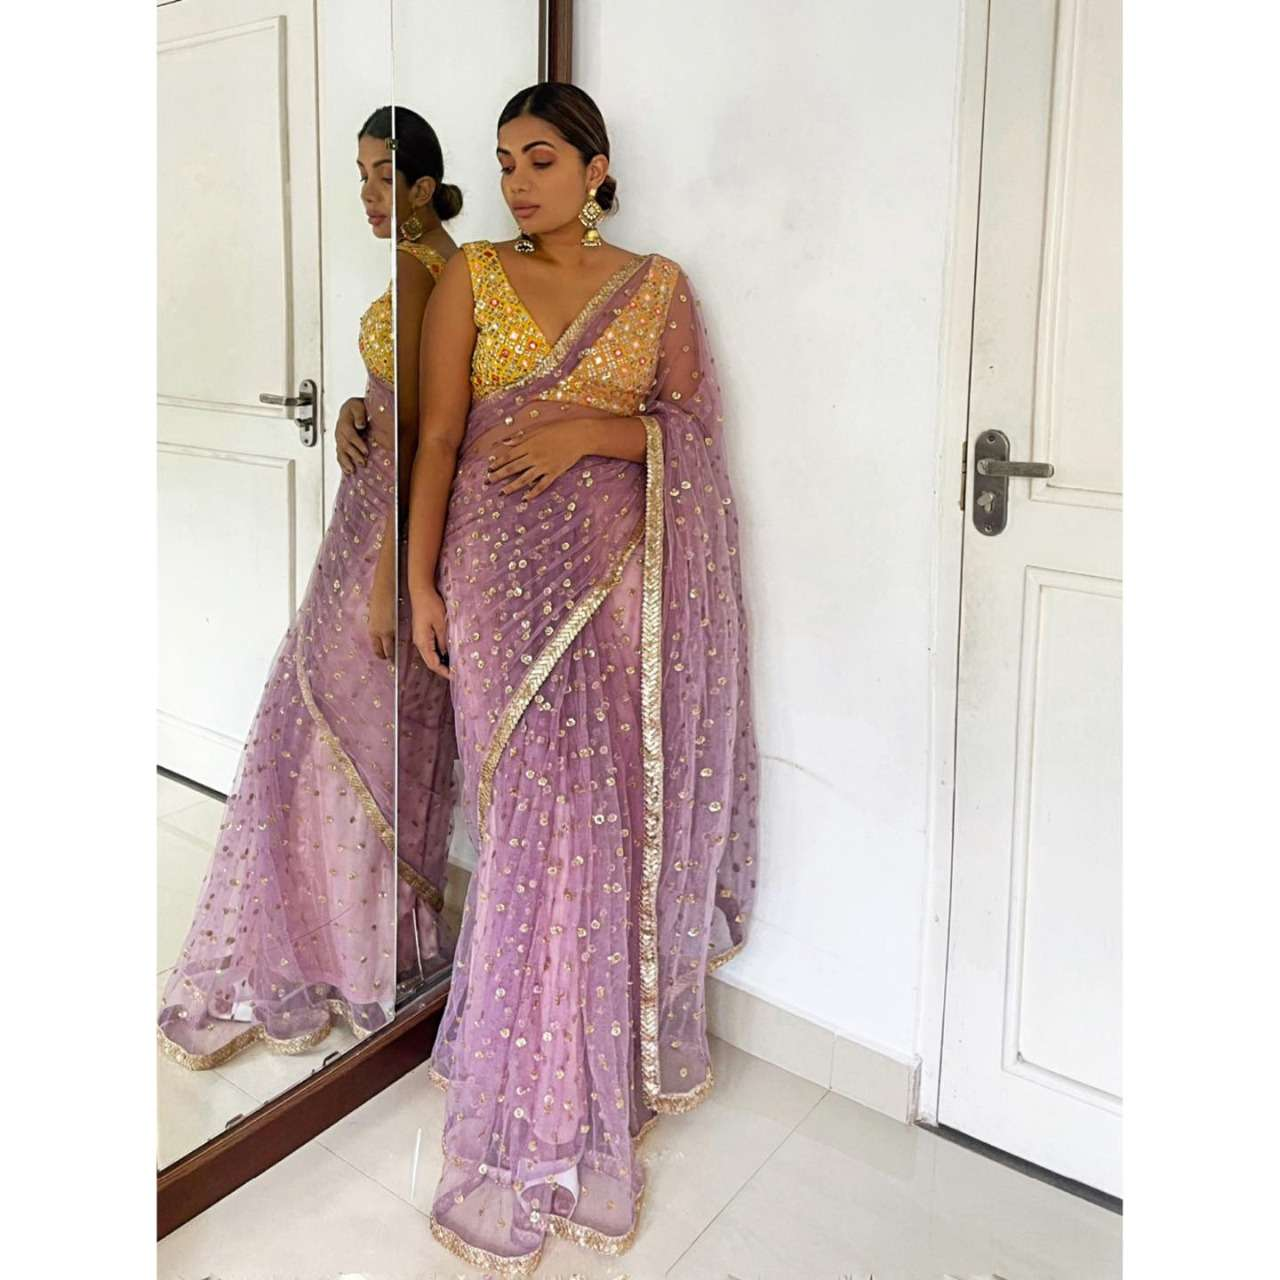 KT 224 NYLONE BUTTERFLY NET WITH SEQUNCE WORK SAREE COLLECTION